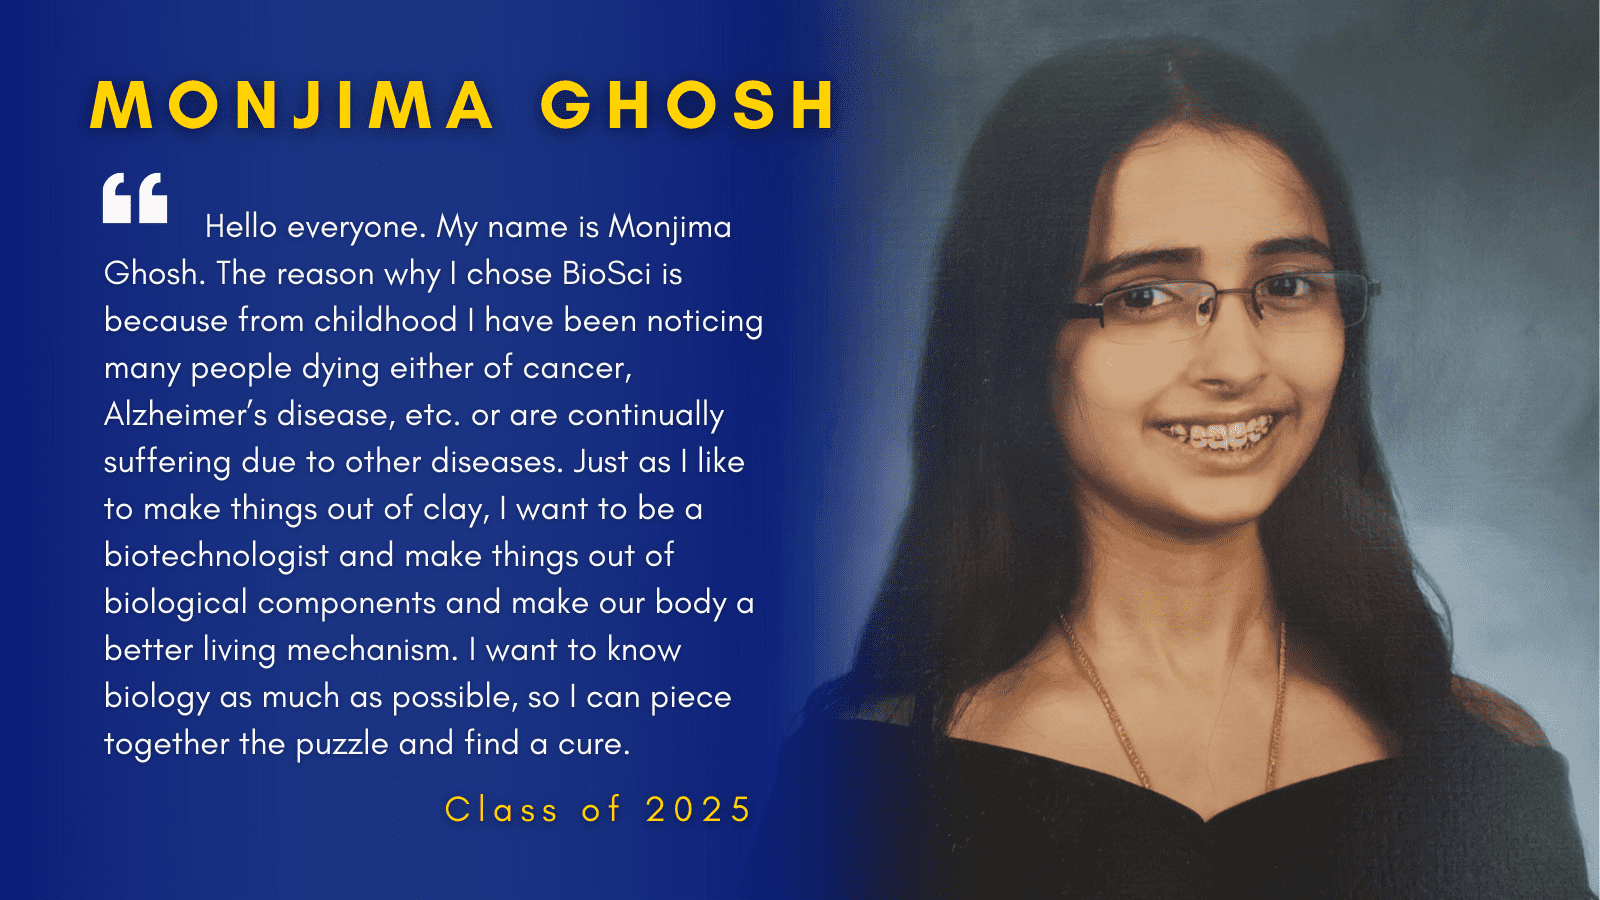 Image of Monjima Ghosh with her quote.